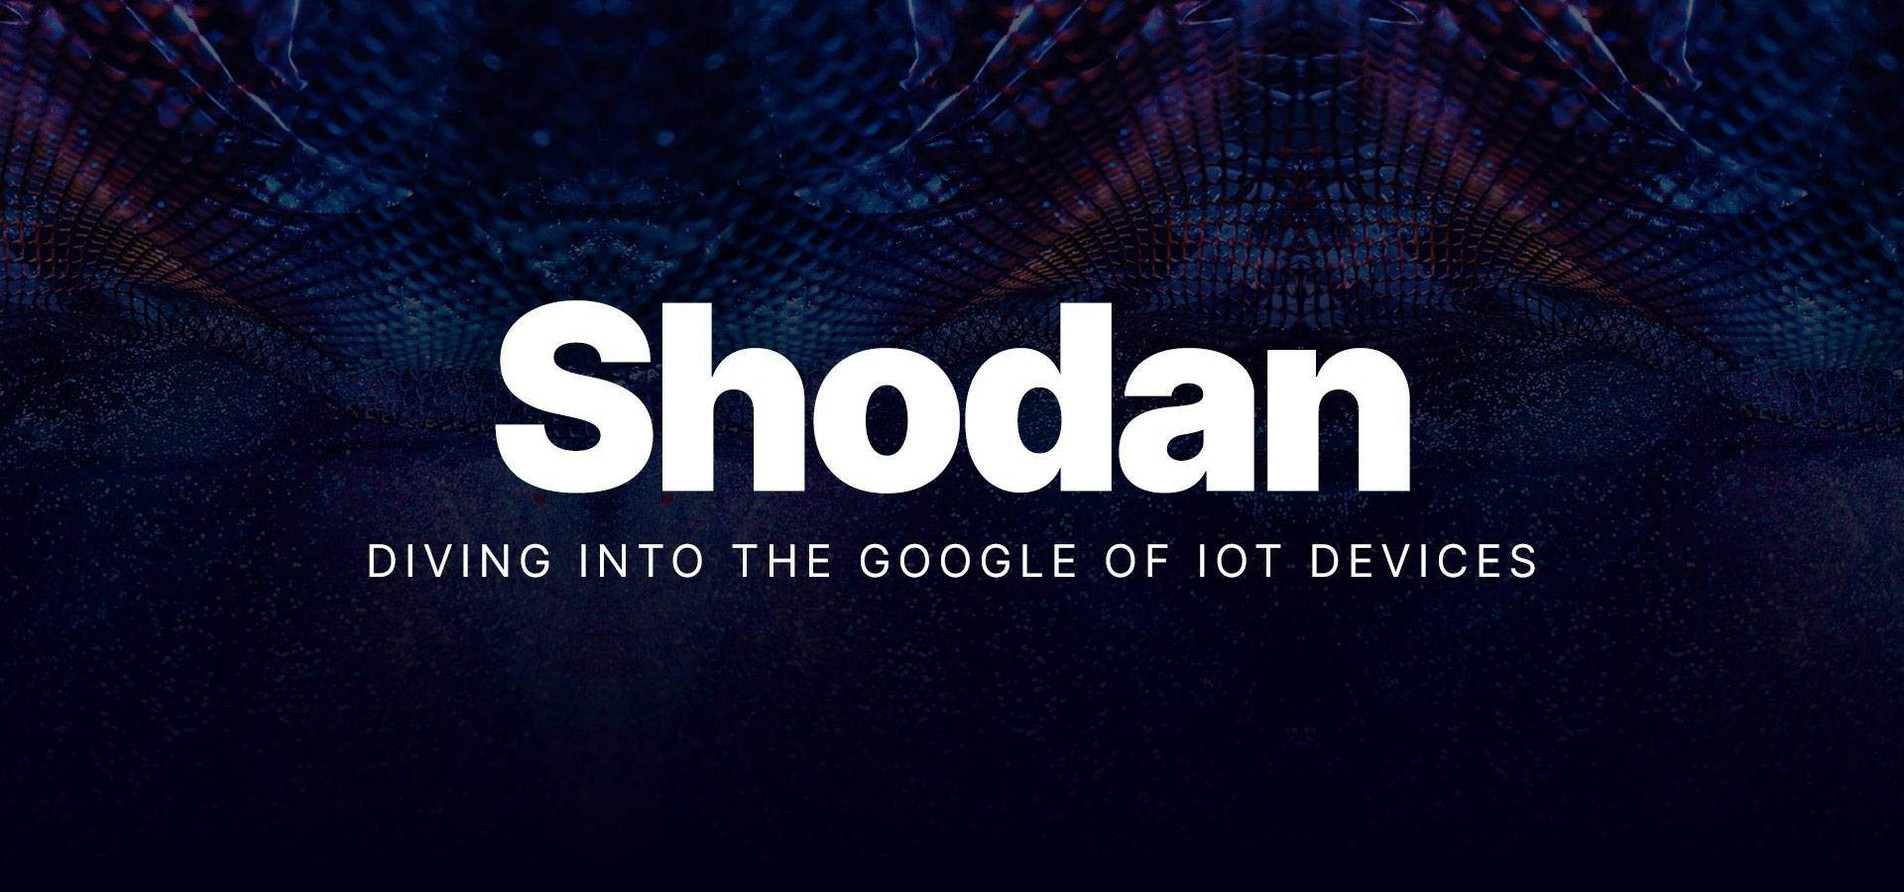 Shodan: Diving into the Google of IoT Devices.